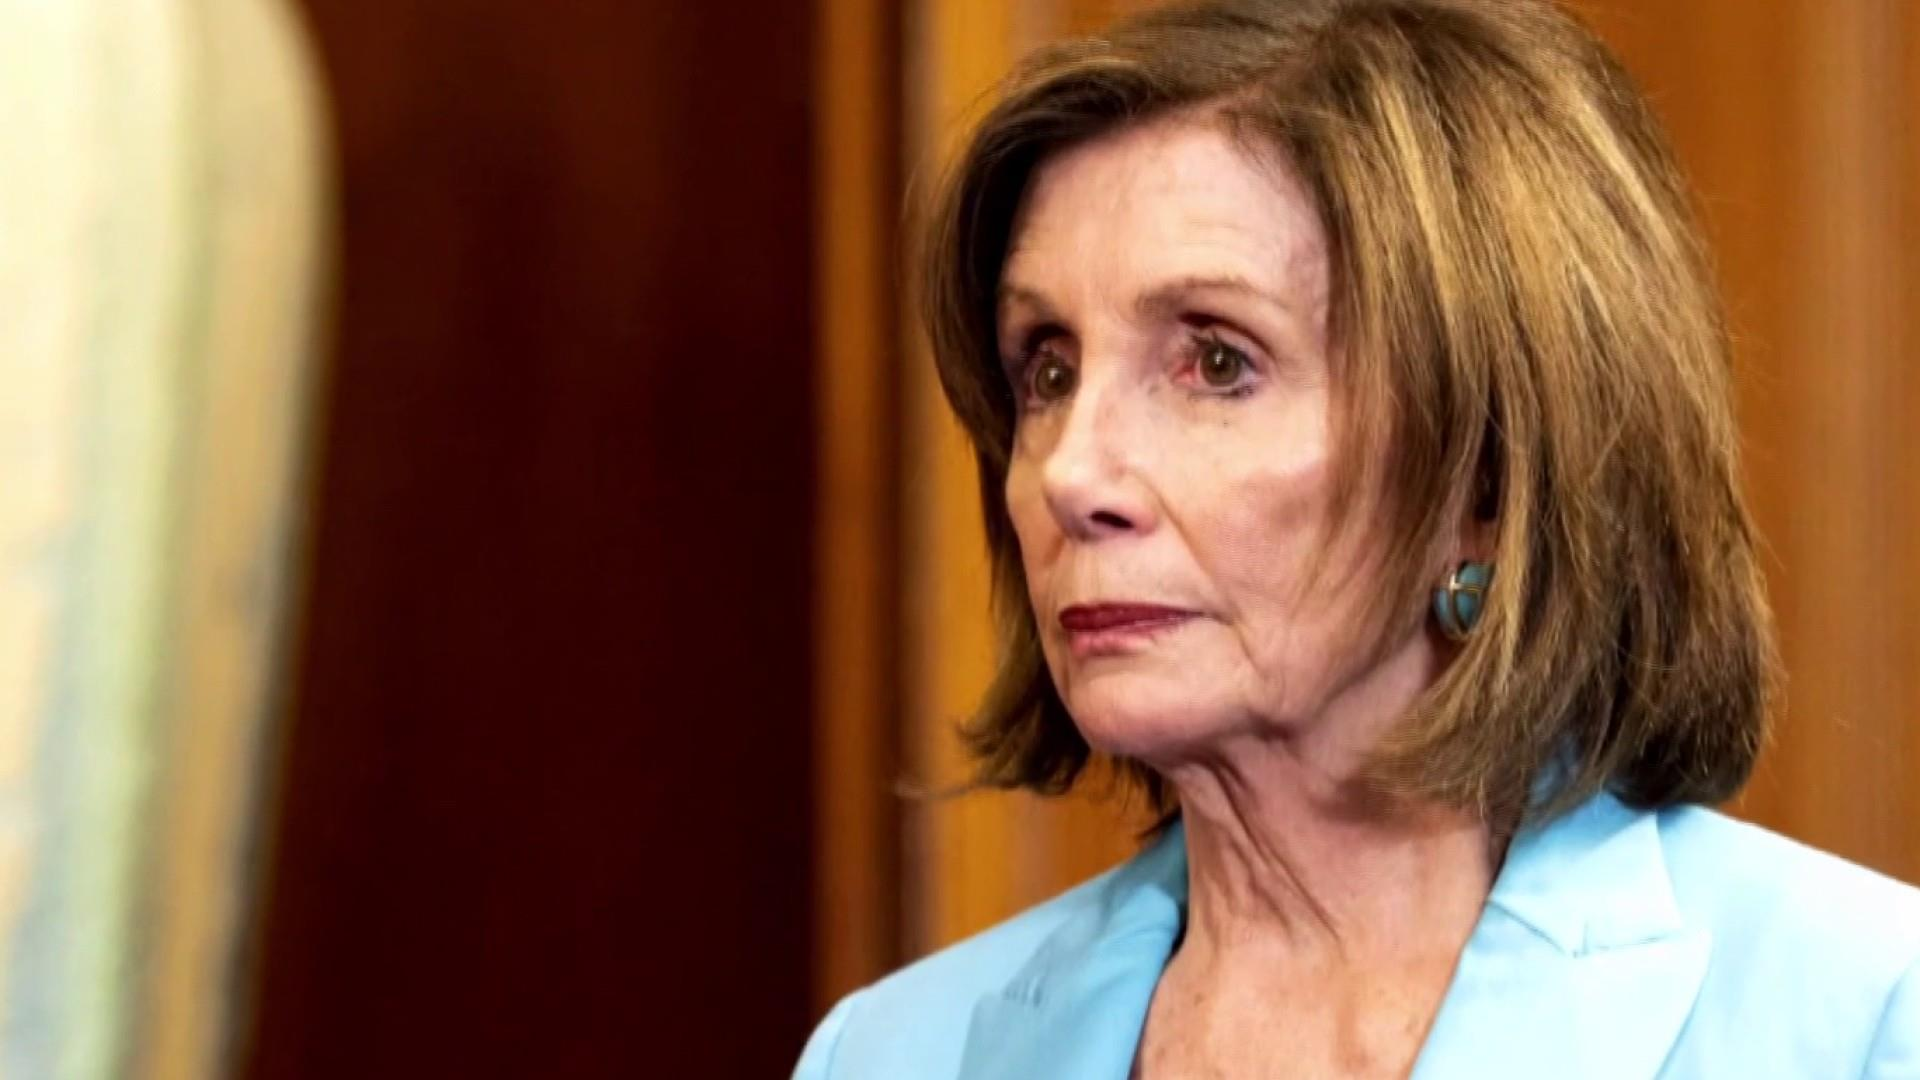 Democrats calling for impeachment grows, but momentum slows